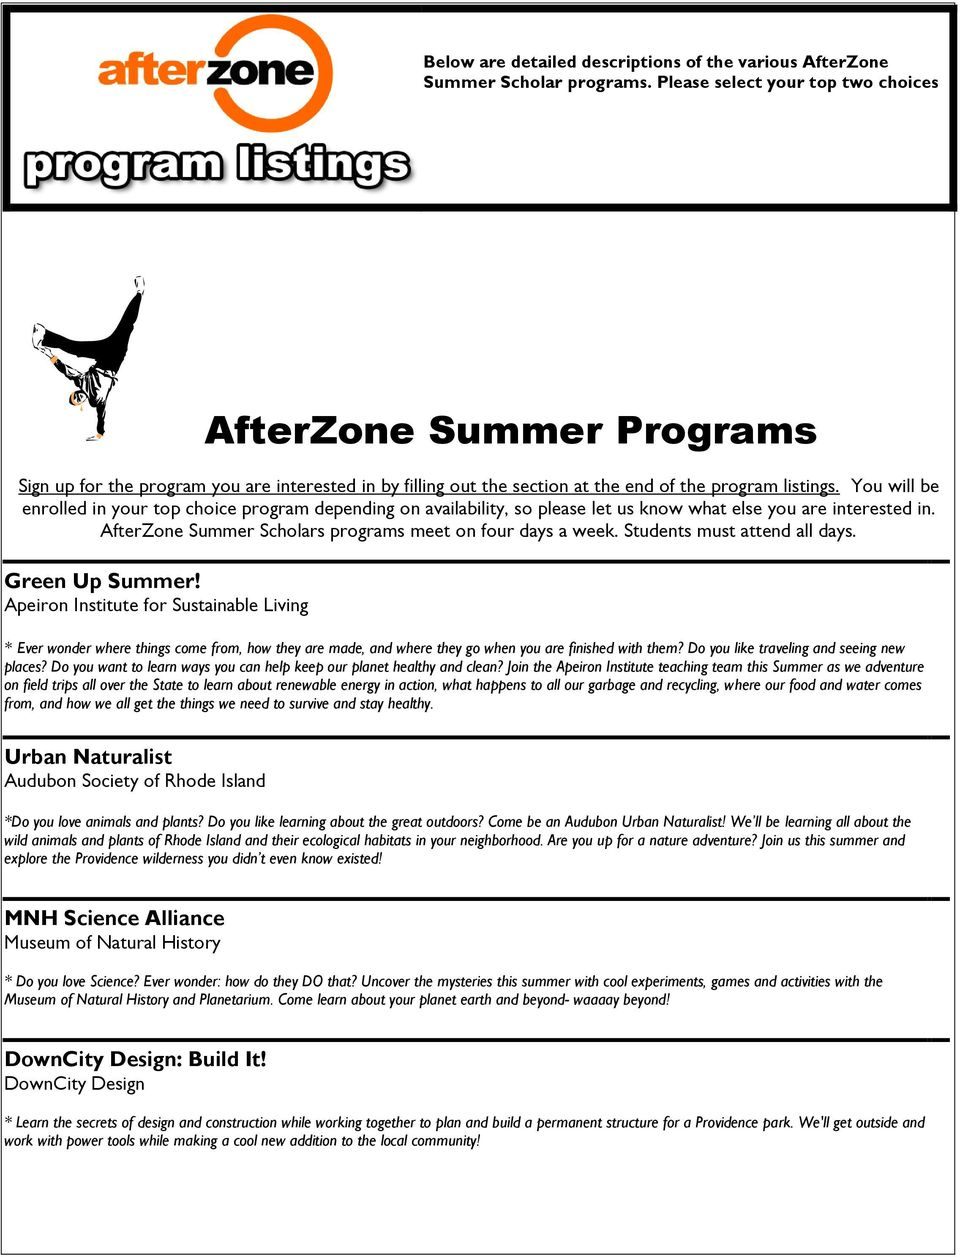 You will be enrolled in your top choice program depending on availability, so please let us know what else you are interested in. AfterZone Summer Scholars programs meet on four days a week.